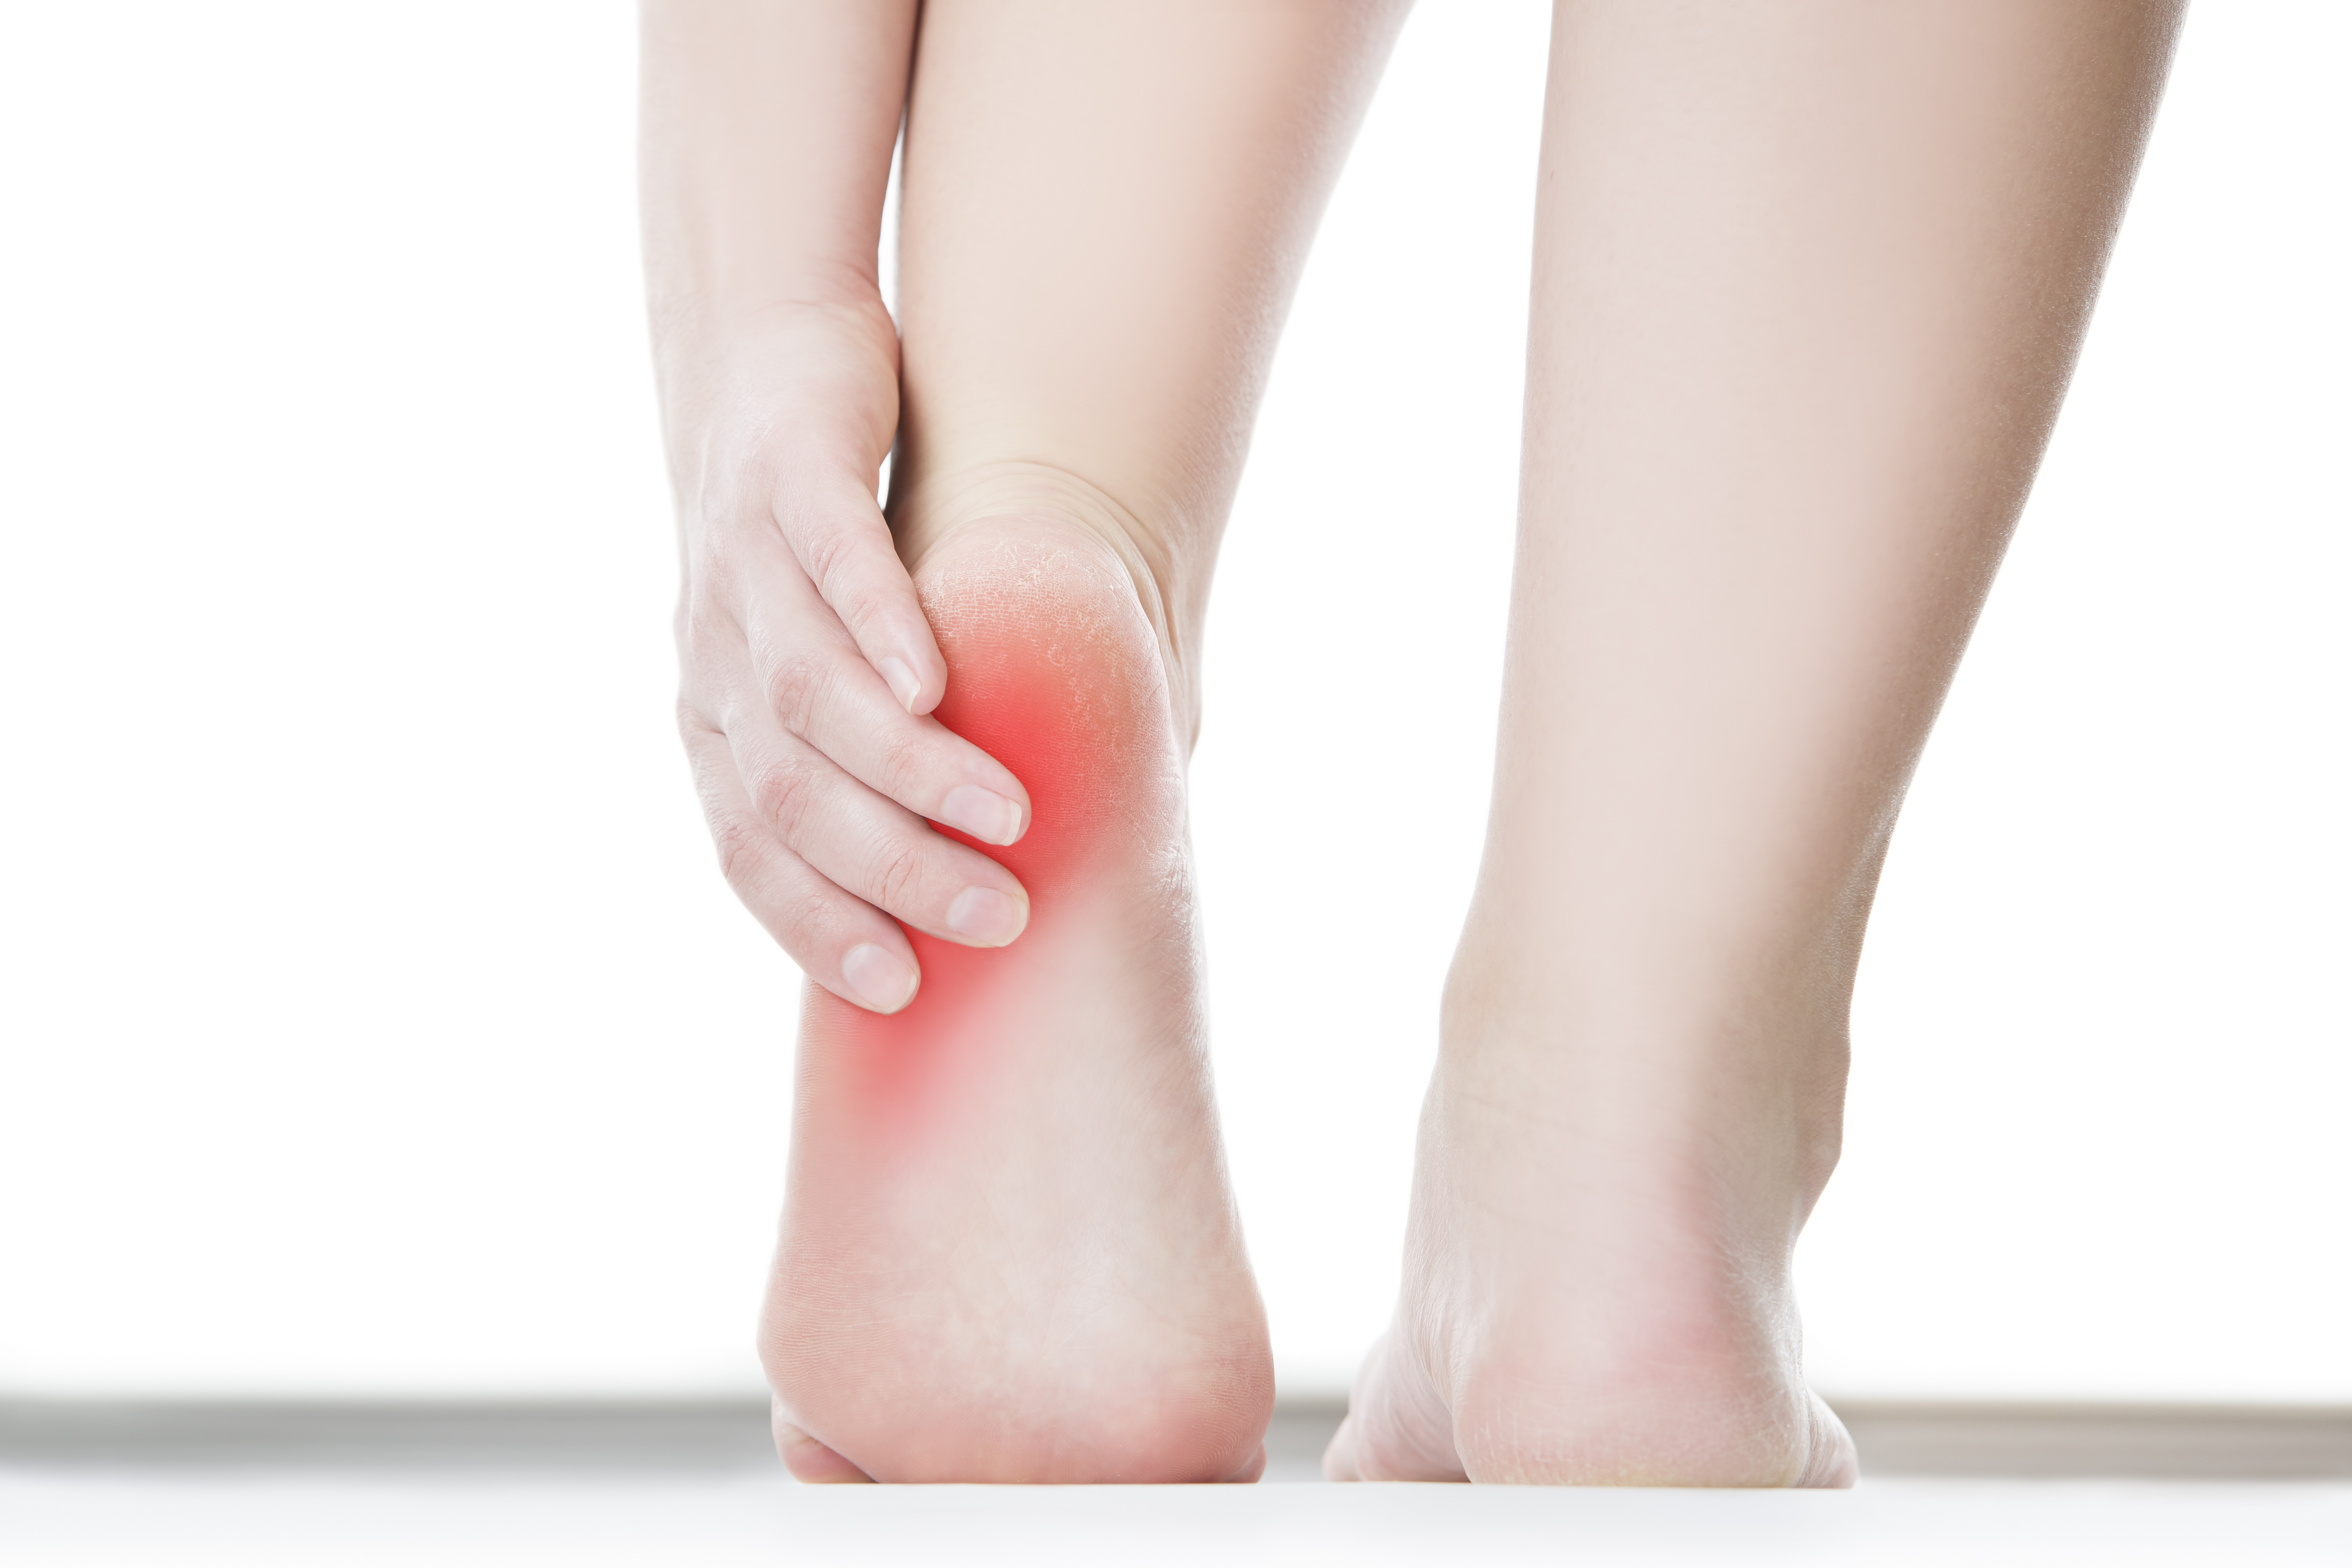 Prolotherapy For Plantar Fasciitis In Mission Beach